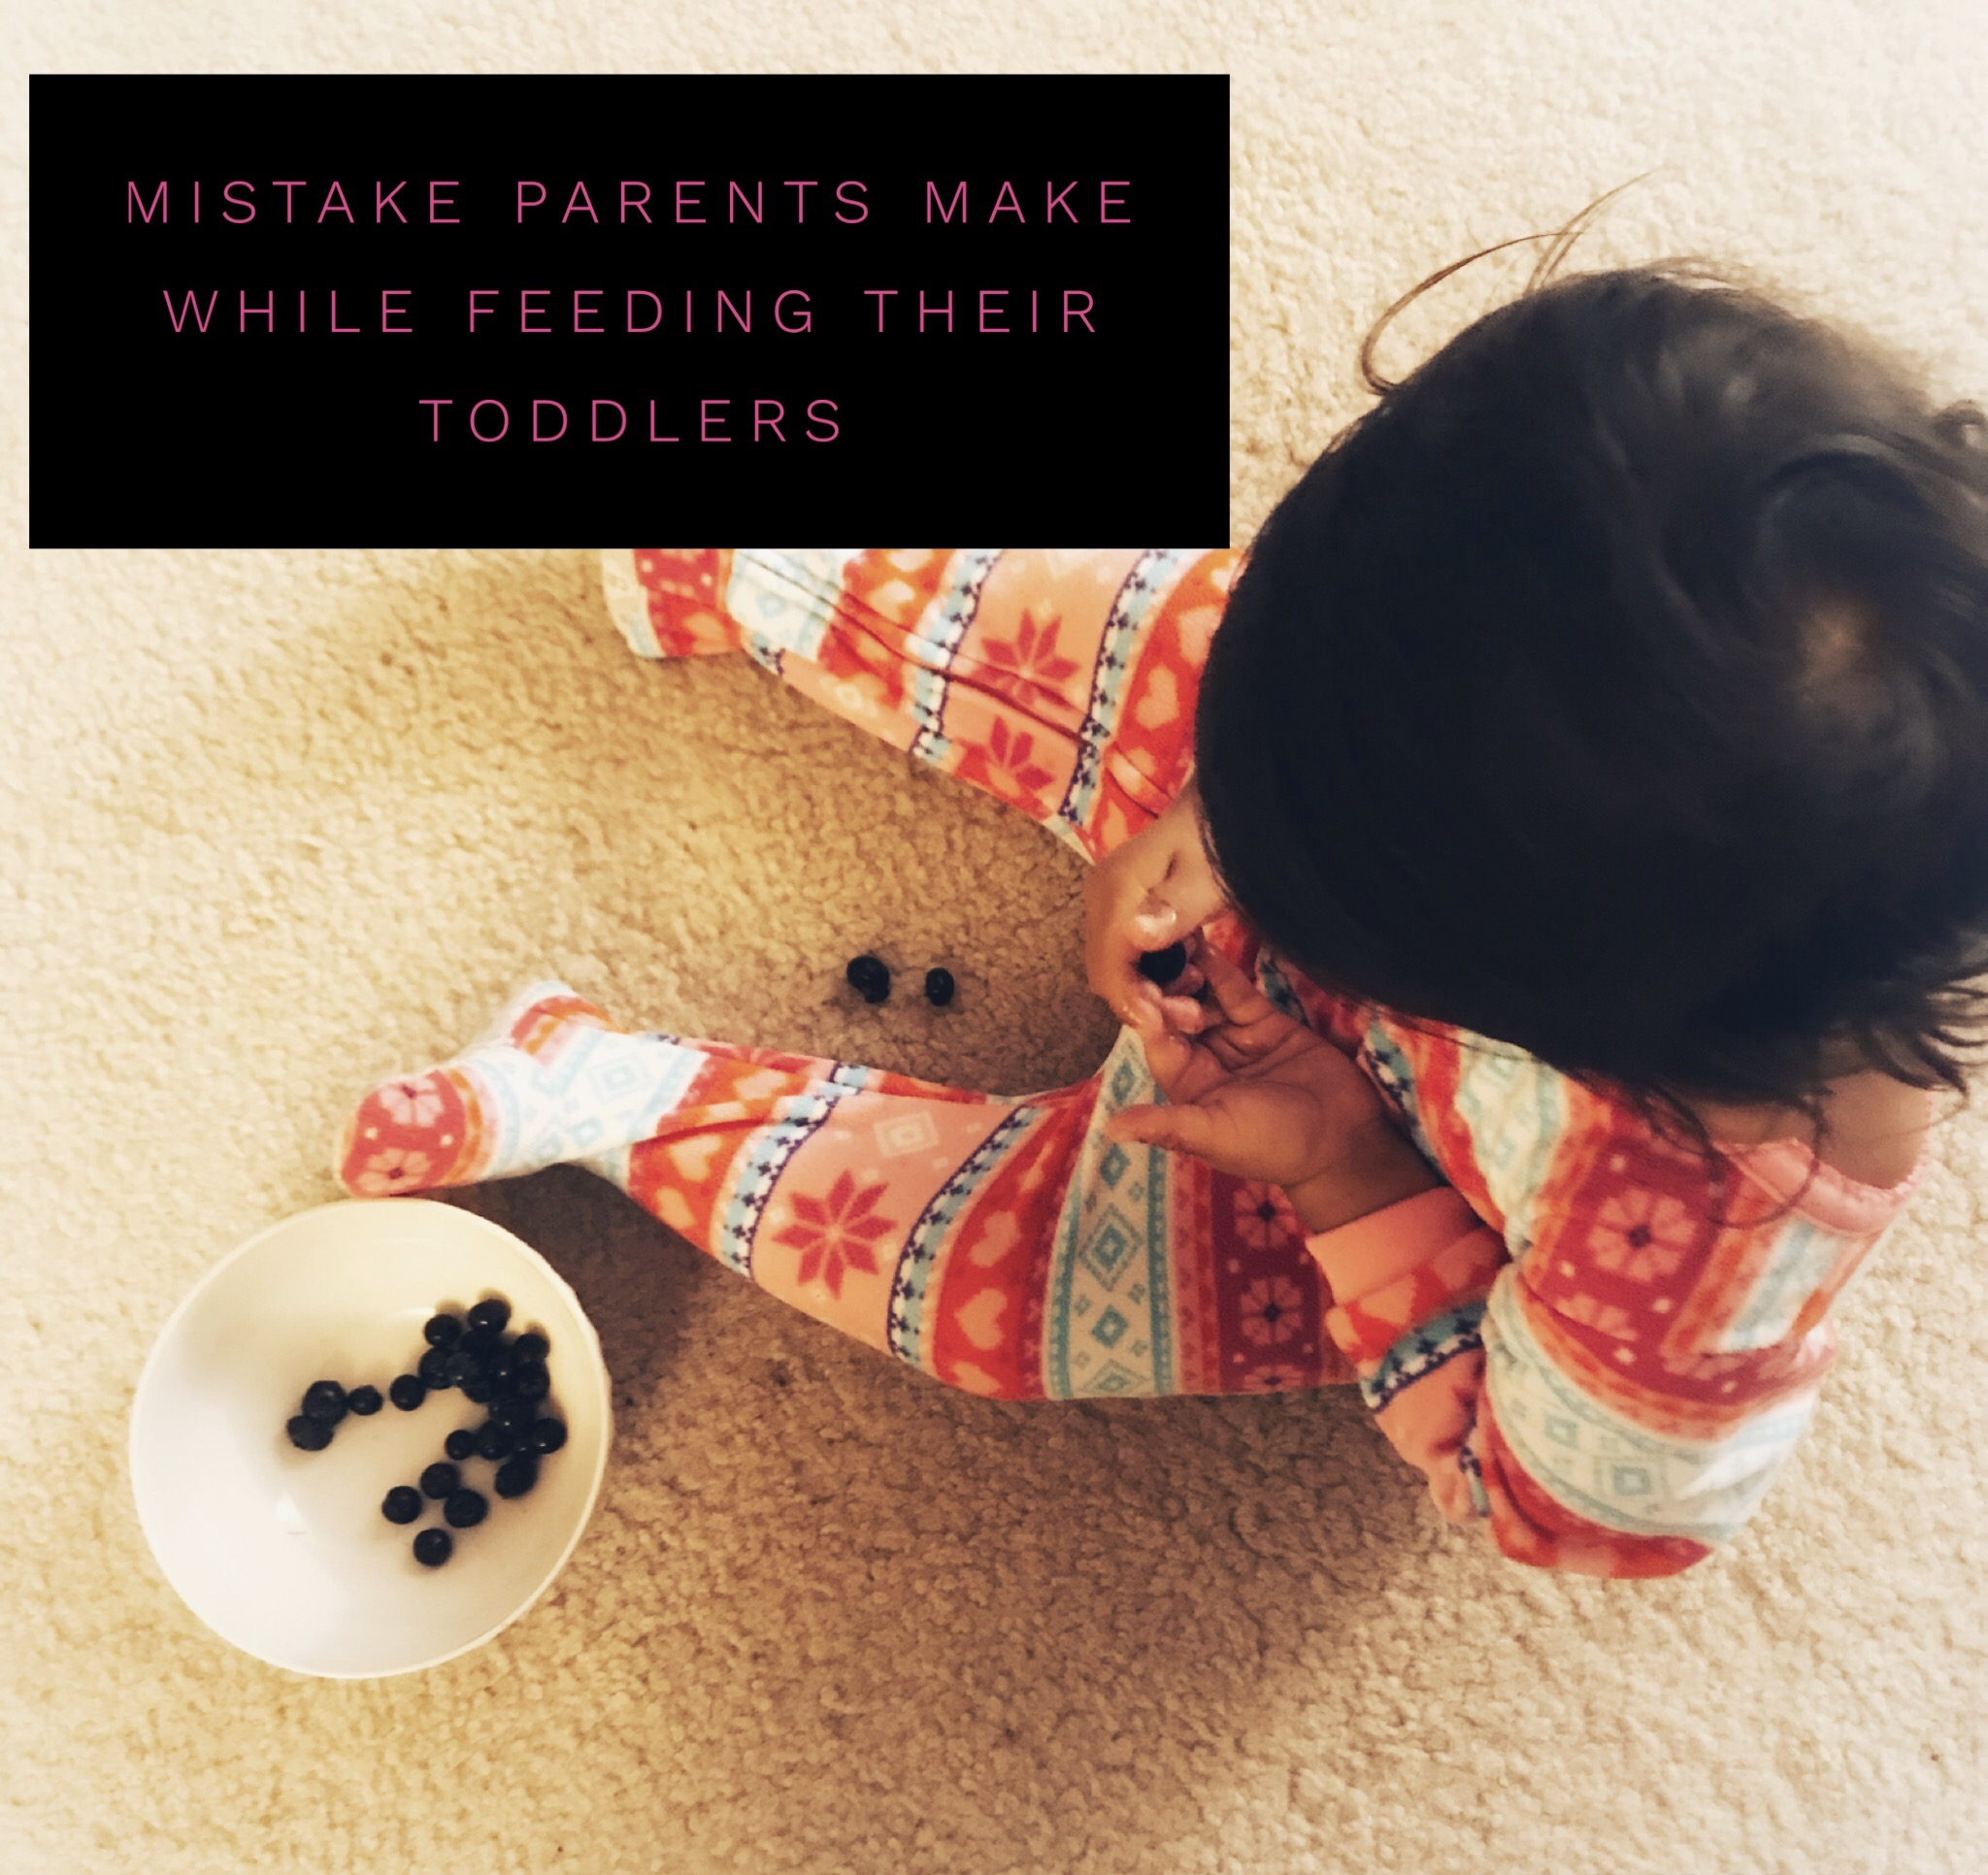 Mistake Parents Make While Feeding Their Toddlers